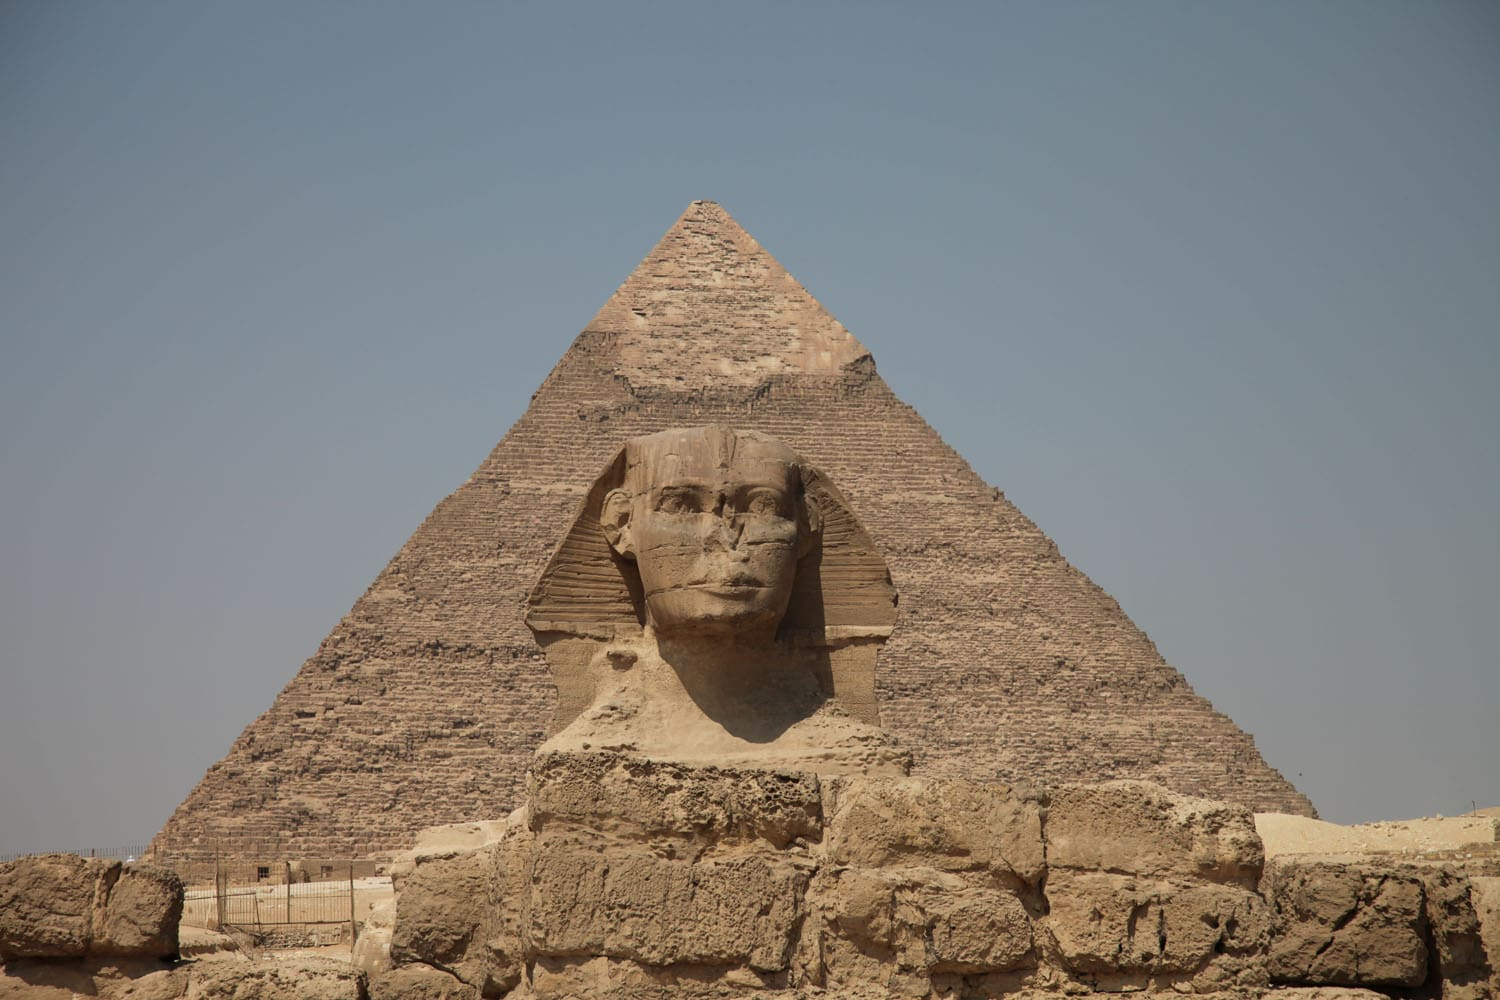 The Great Sphinx and Pyramide of Khafra